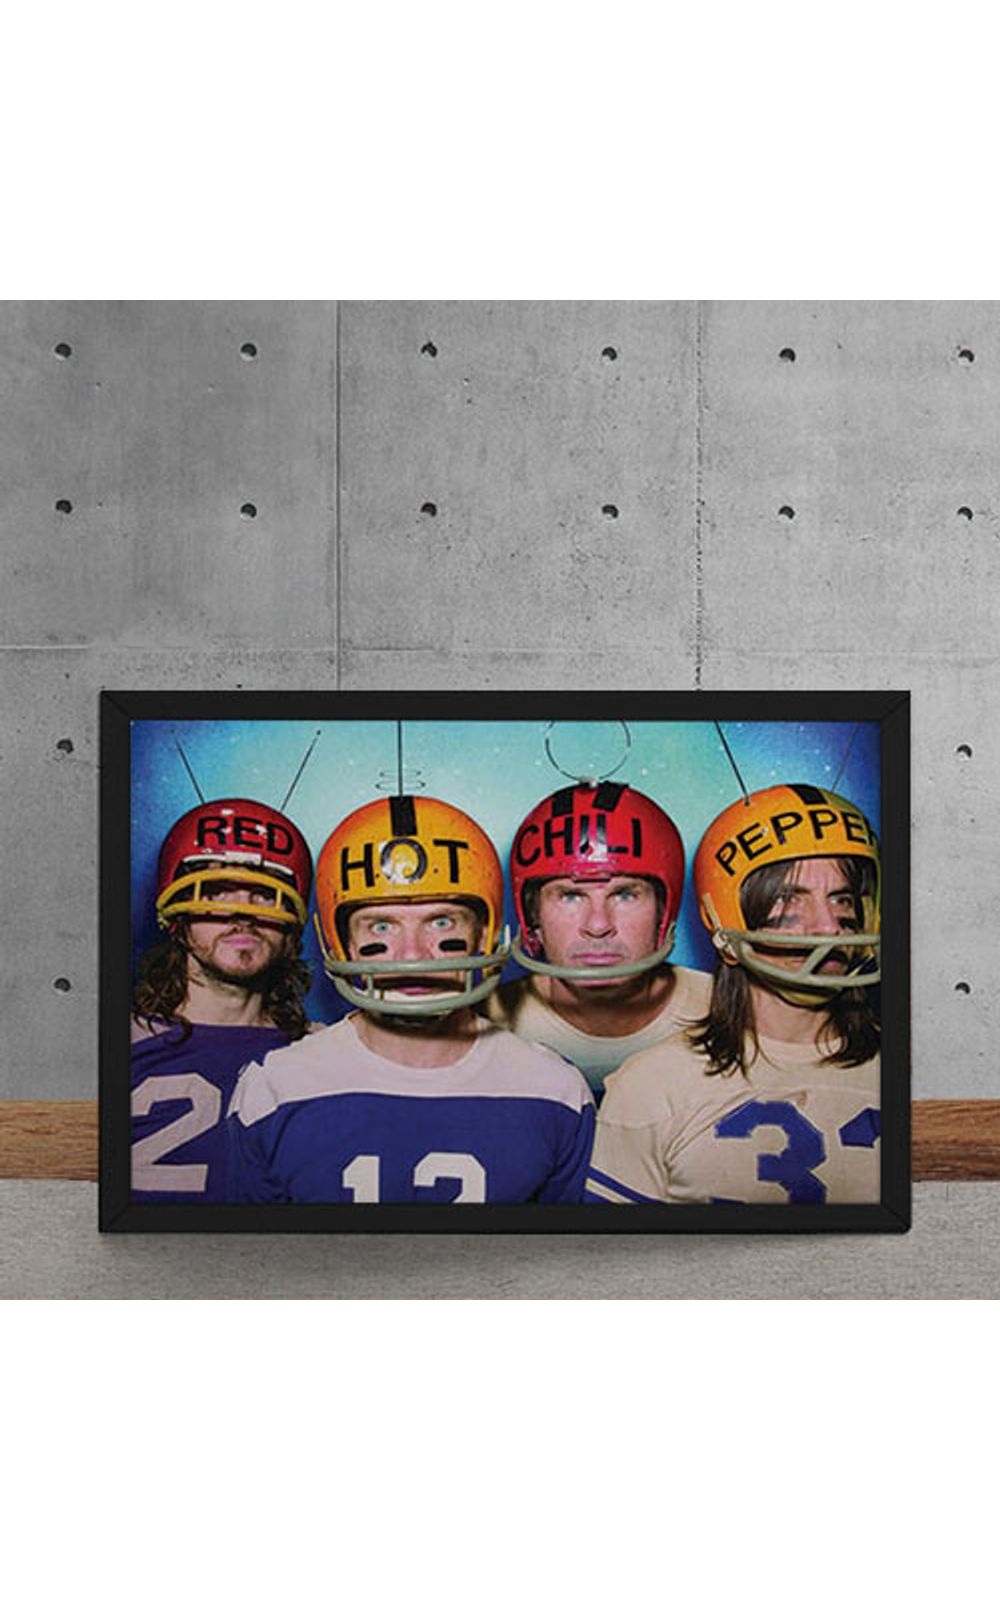 Foto 5 - Quadro Decorativo Red Hot Chili Peppers Futebol Americano